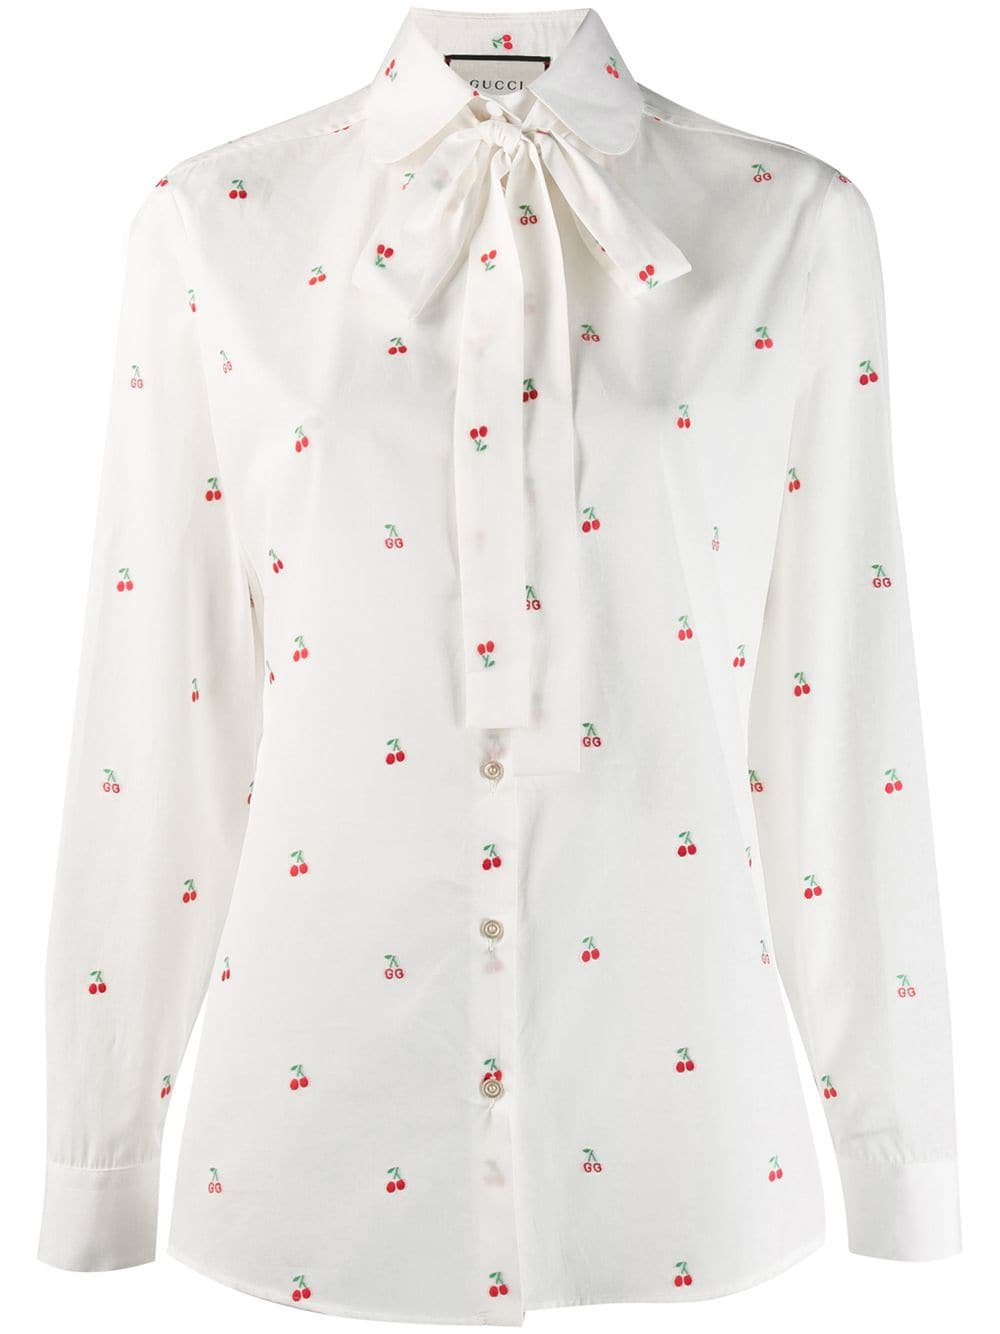 Gucci Cherry Embroidered Blouse - Farfetch